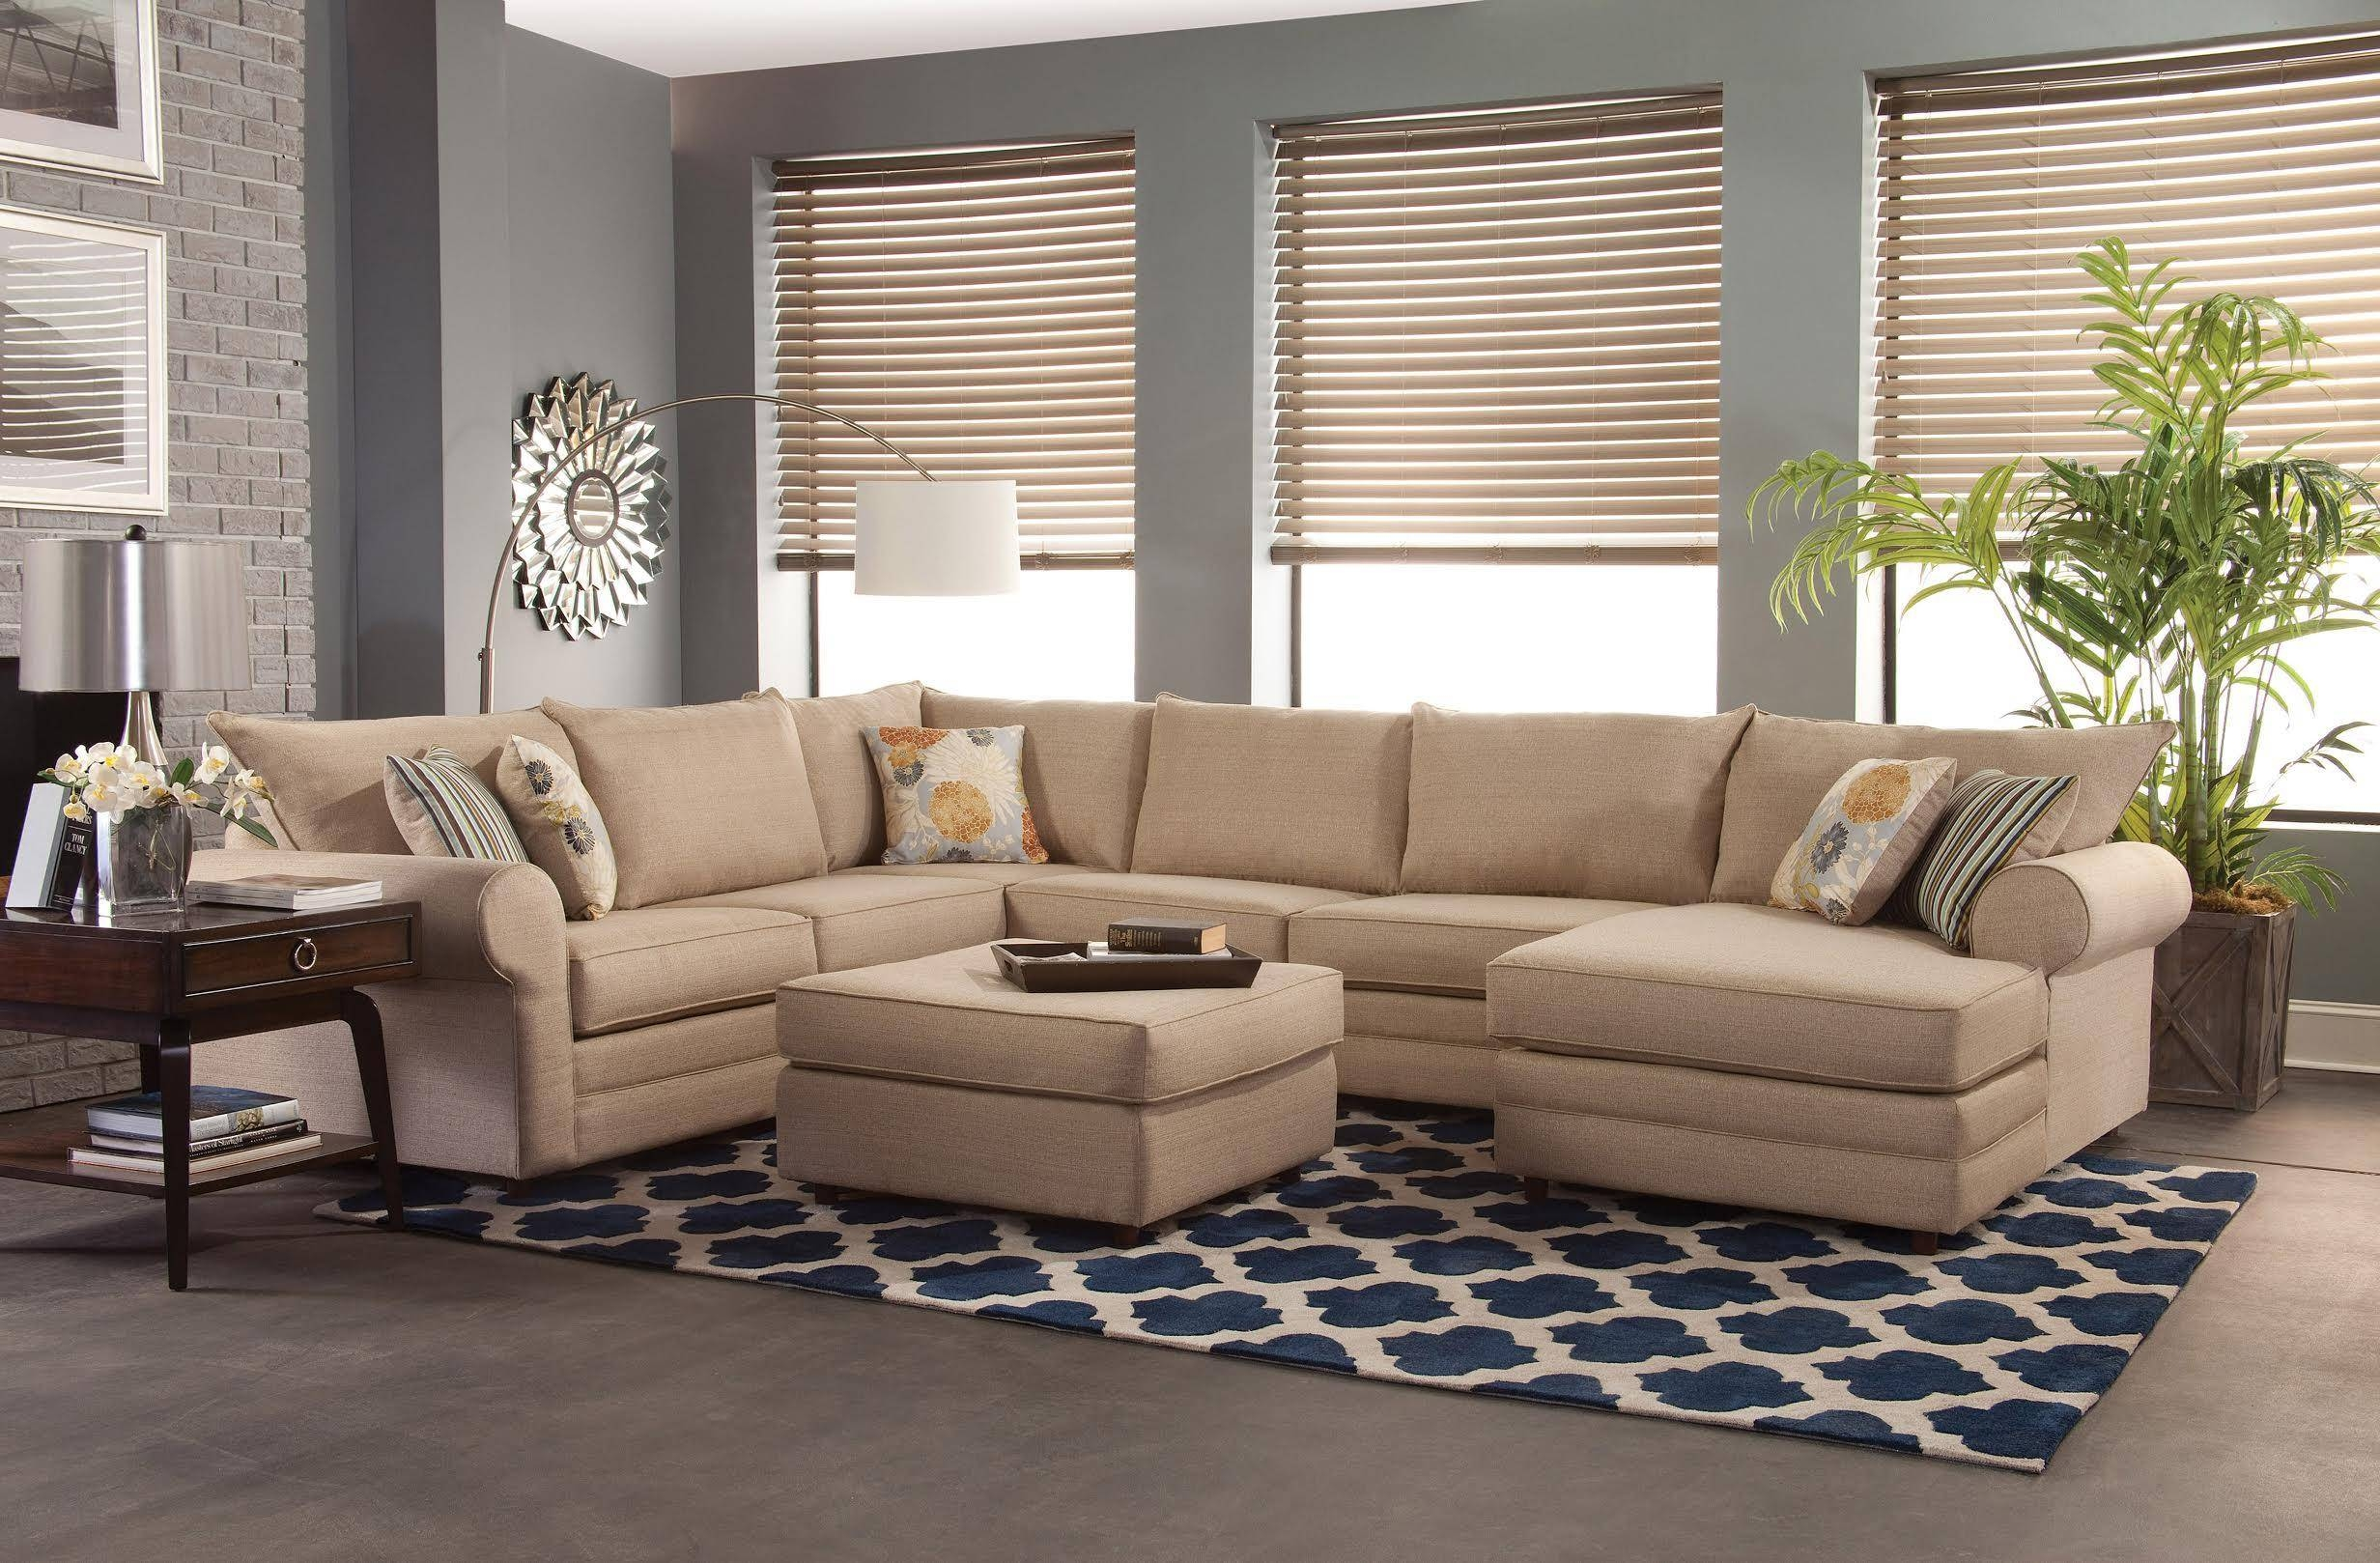 79 Exciting Large Sectional Sofas With Recliners Home Design | Hoozoo Intended For Florence Large Sofas (Photo 20 of 30)